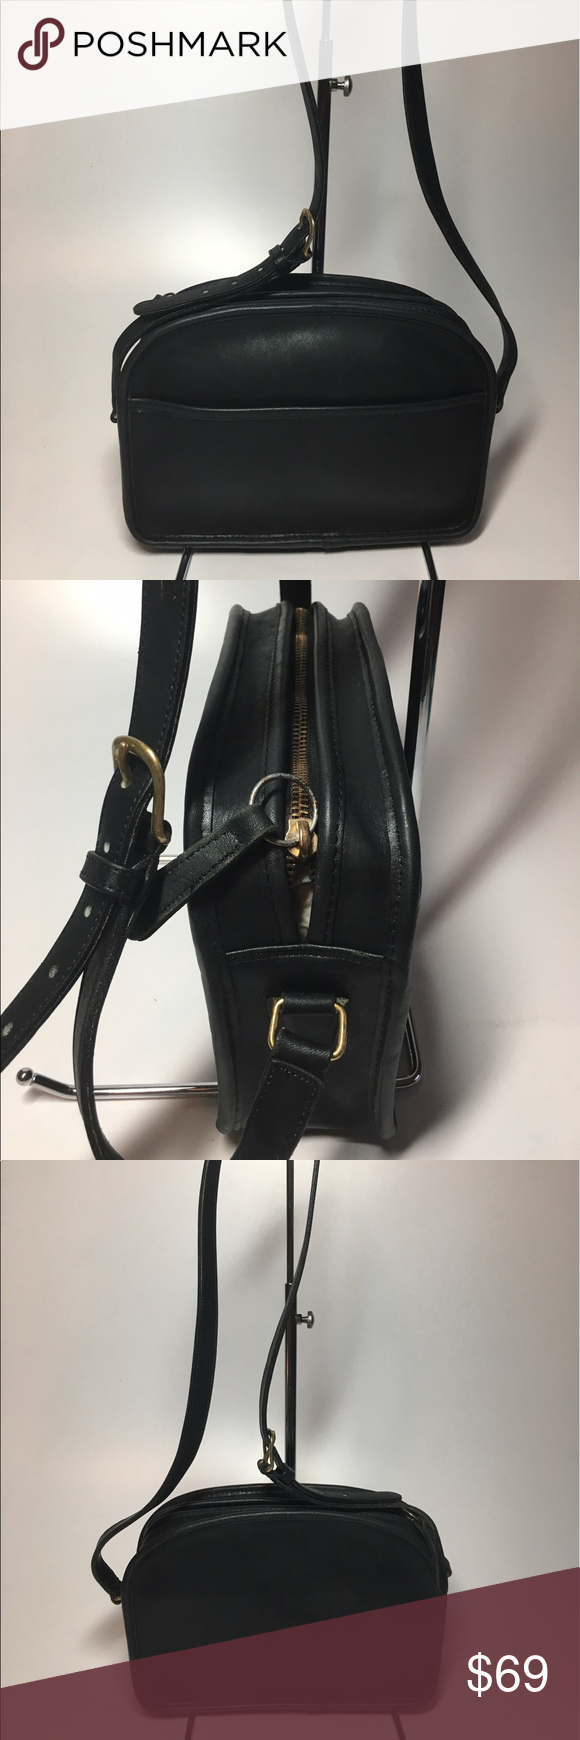 Coach Crossbody Black Leather Bag Purse Black leather